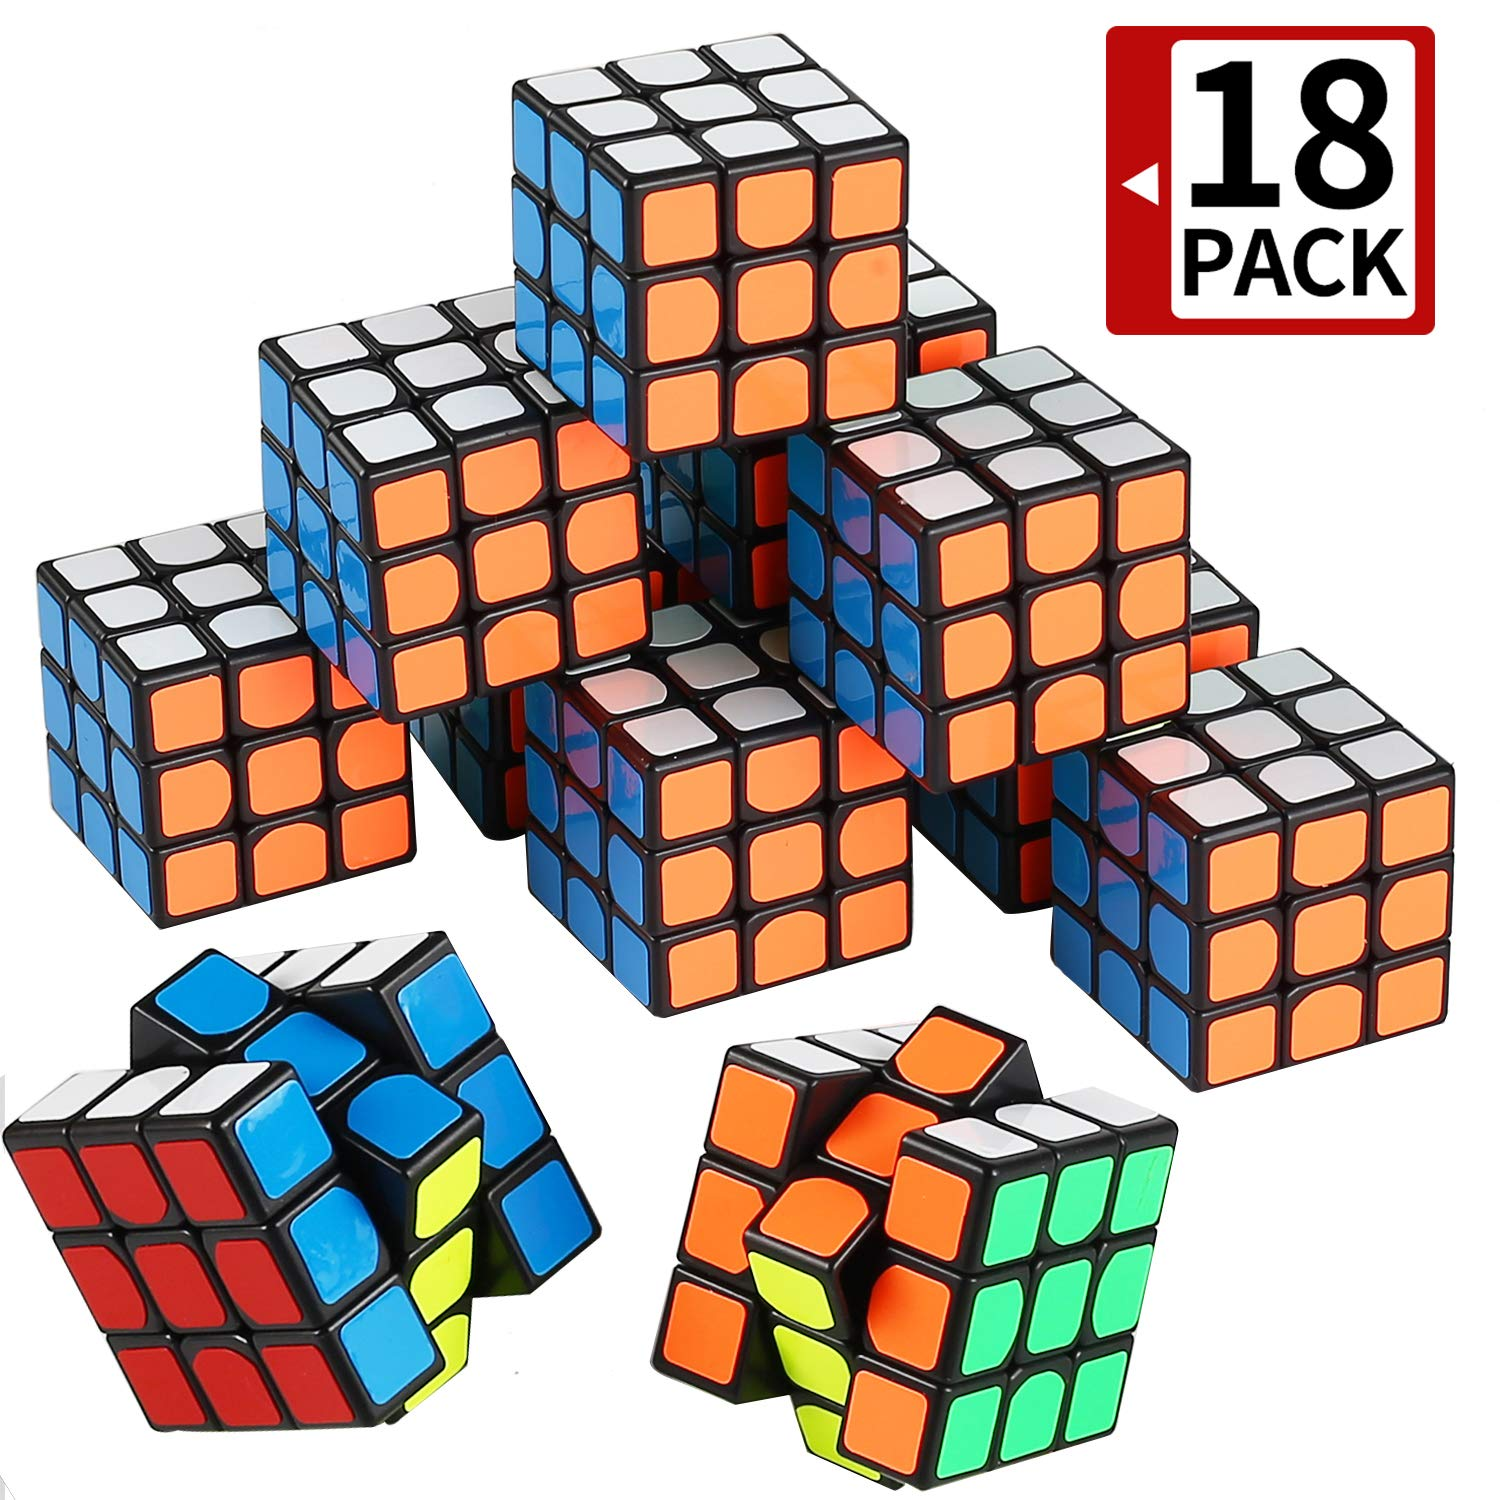 Mini Cube, Puzzle Party Toy(18 Pack), Eco-Friendly Material with Vivid Colors,Party Favor School Supplies Puzzle Game Set for Boy Girl Kid Child, Magic Cube Goody Bag Filler Birthday Gift by MAPIXO